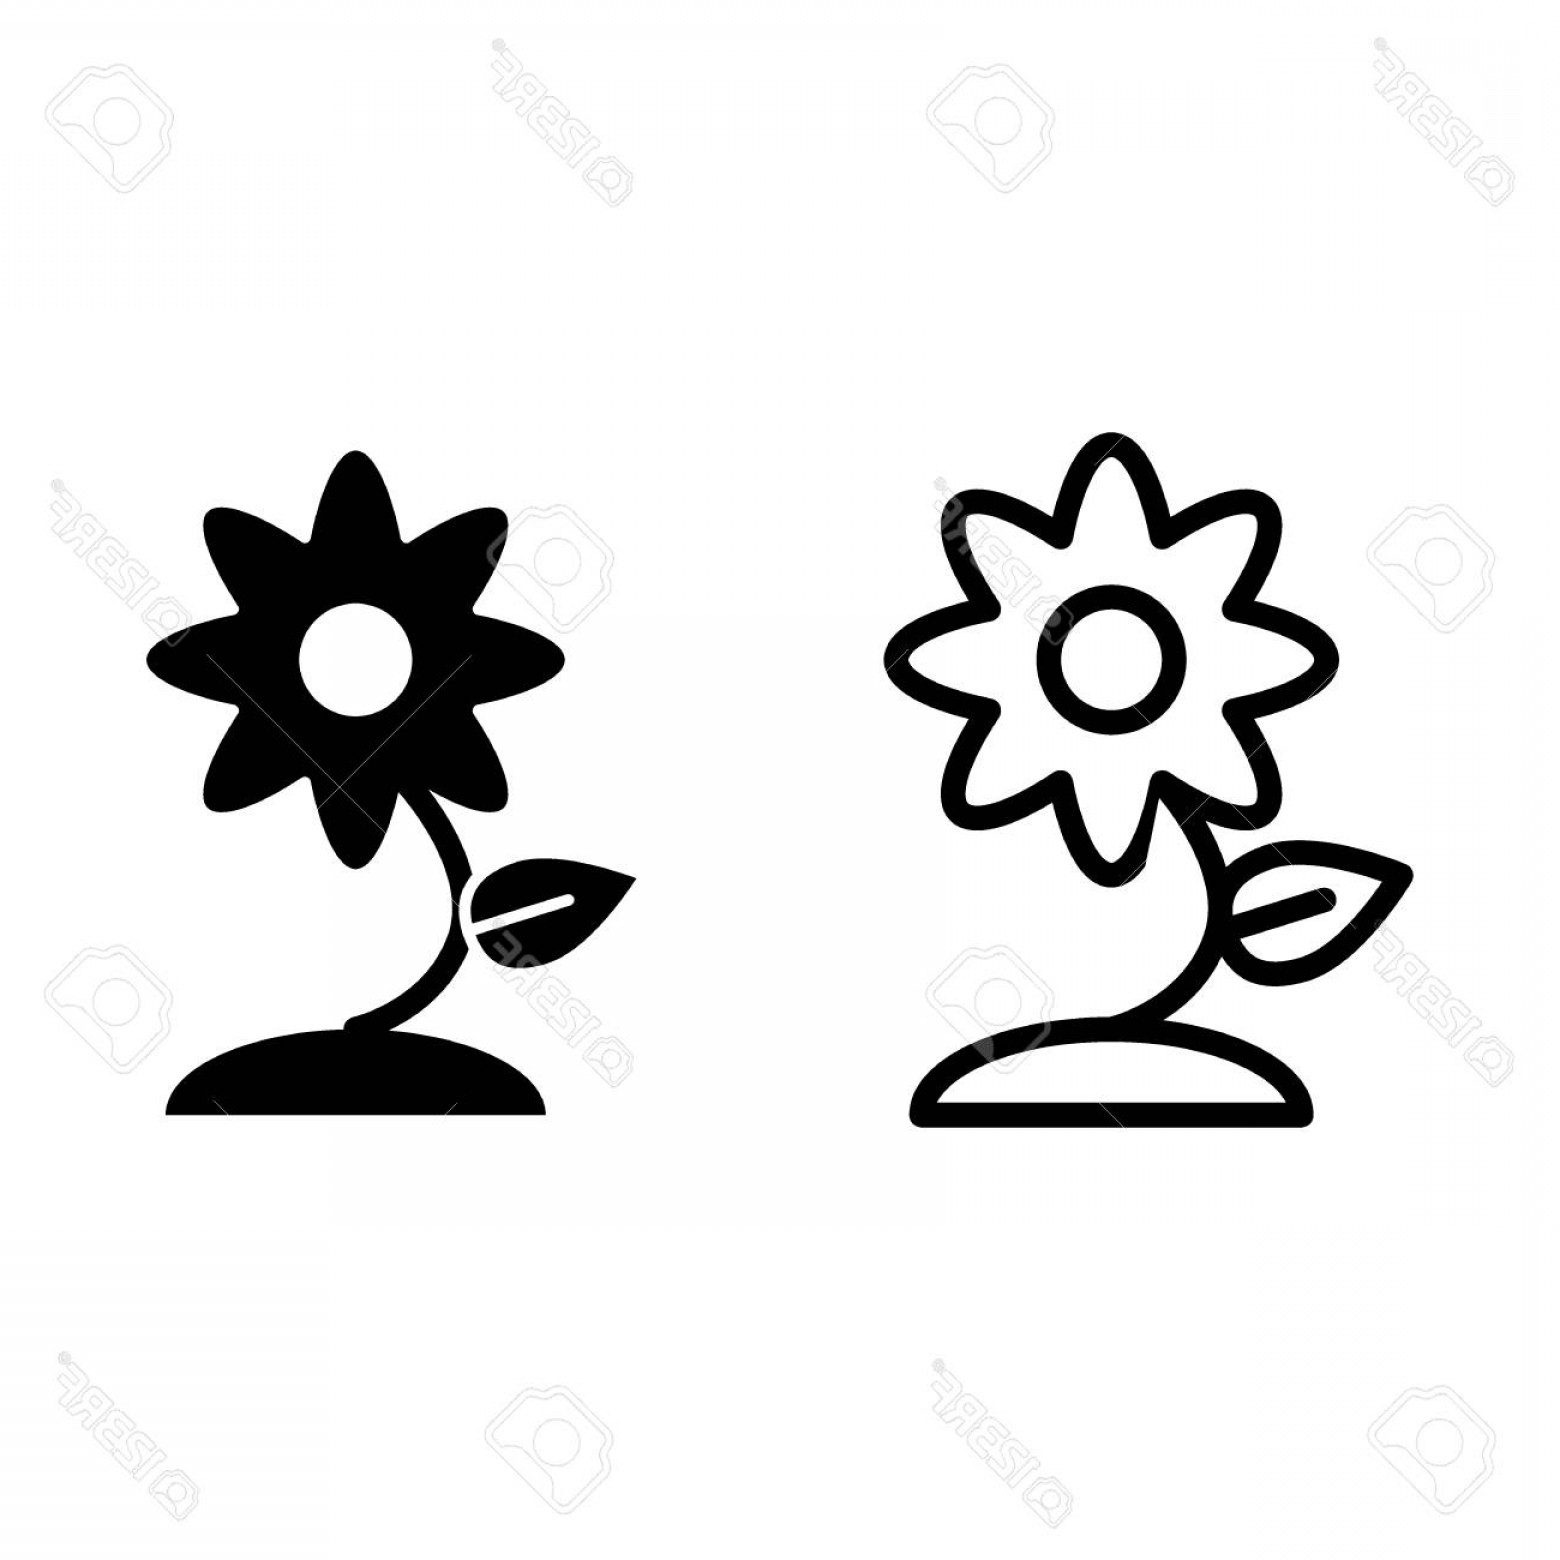 Floral Vector Icon: Photostock Vector Flower Line And Glyph Icon Floral Vector Illustration Isolated On White Plant Outline Style Design D